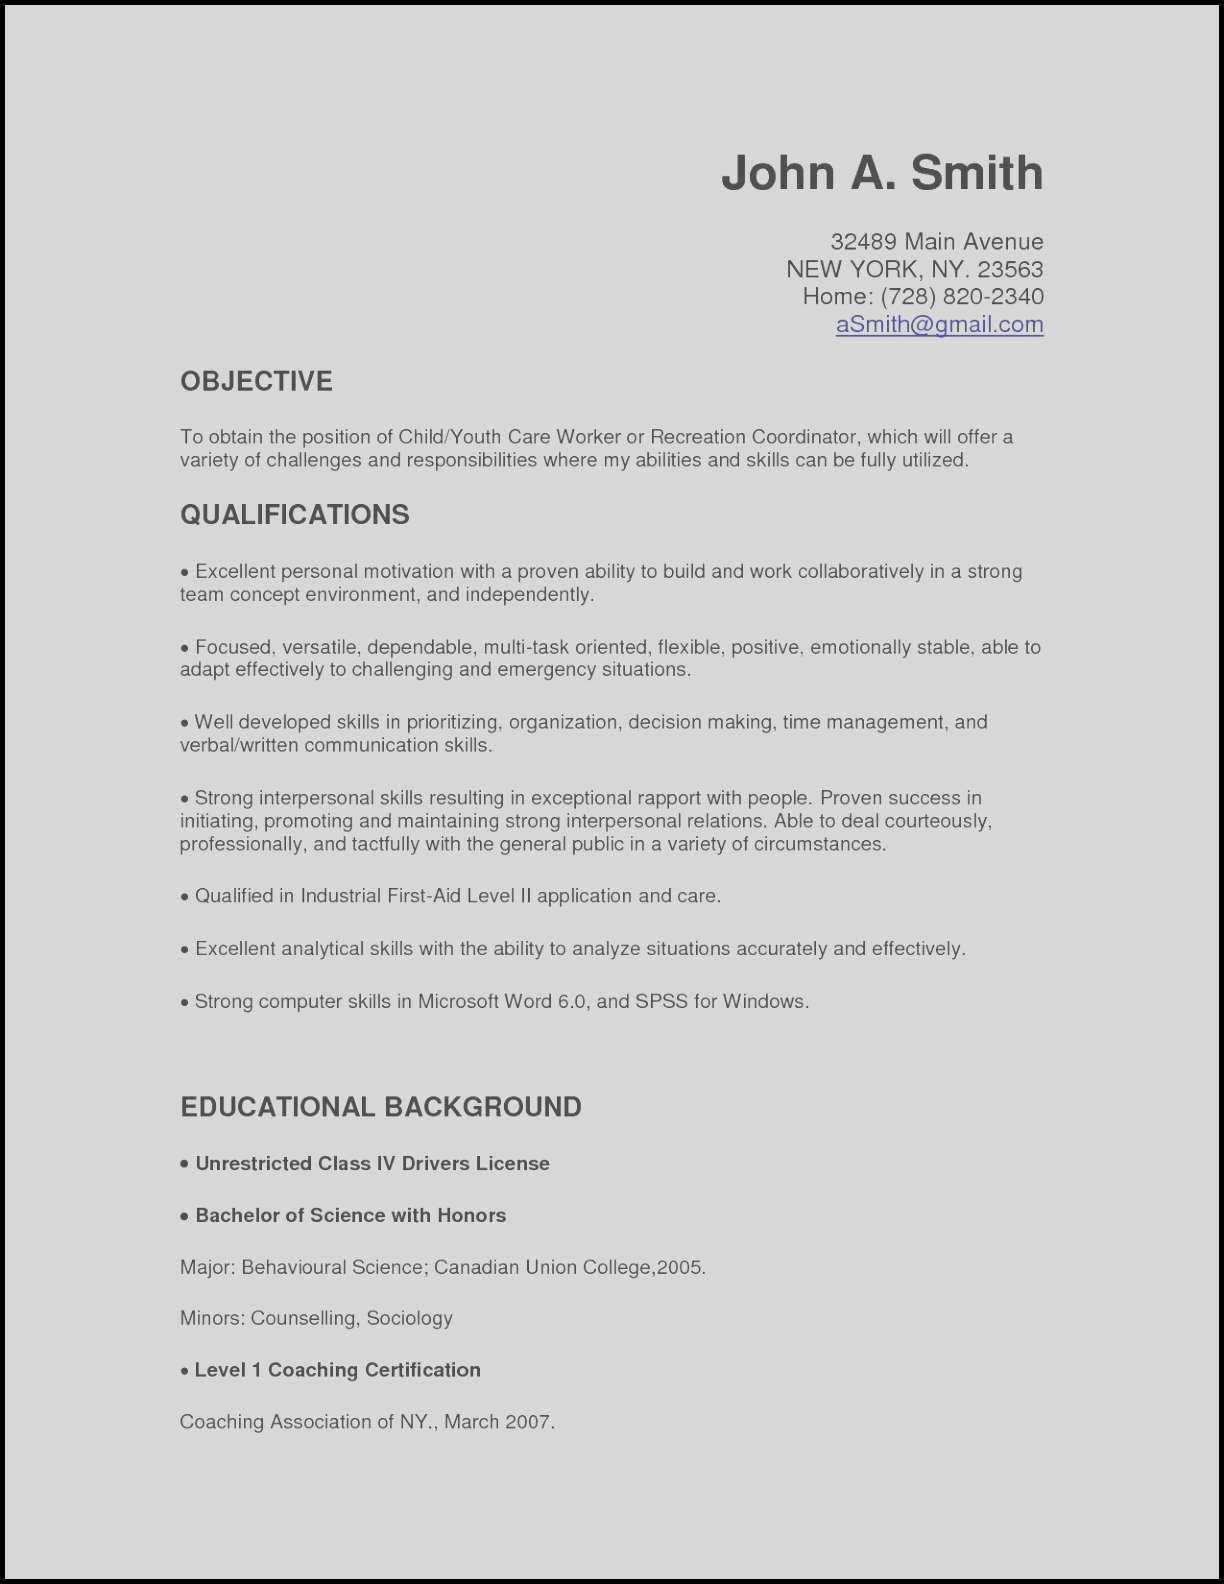 Autopsy Report Template | Glendale Community For Blank pertaining to Autopsy Report Template